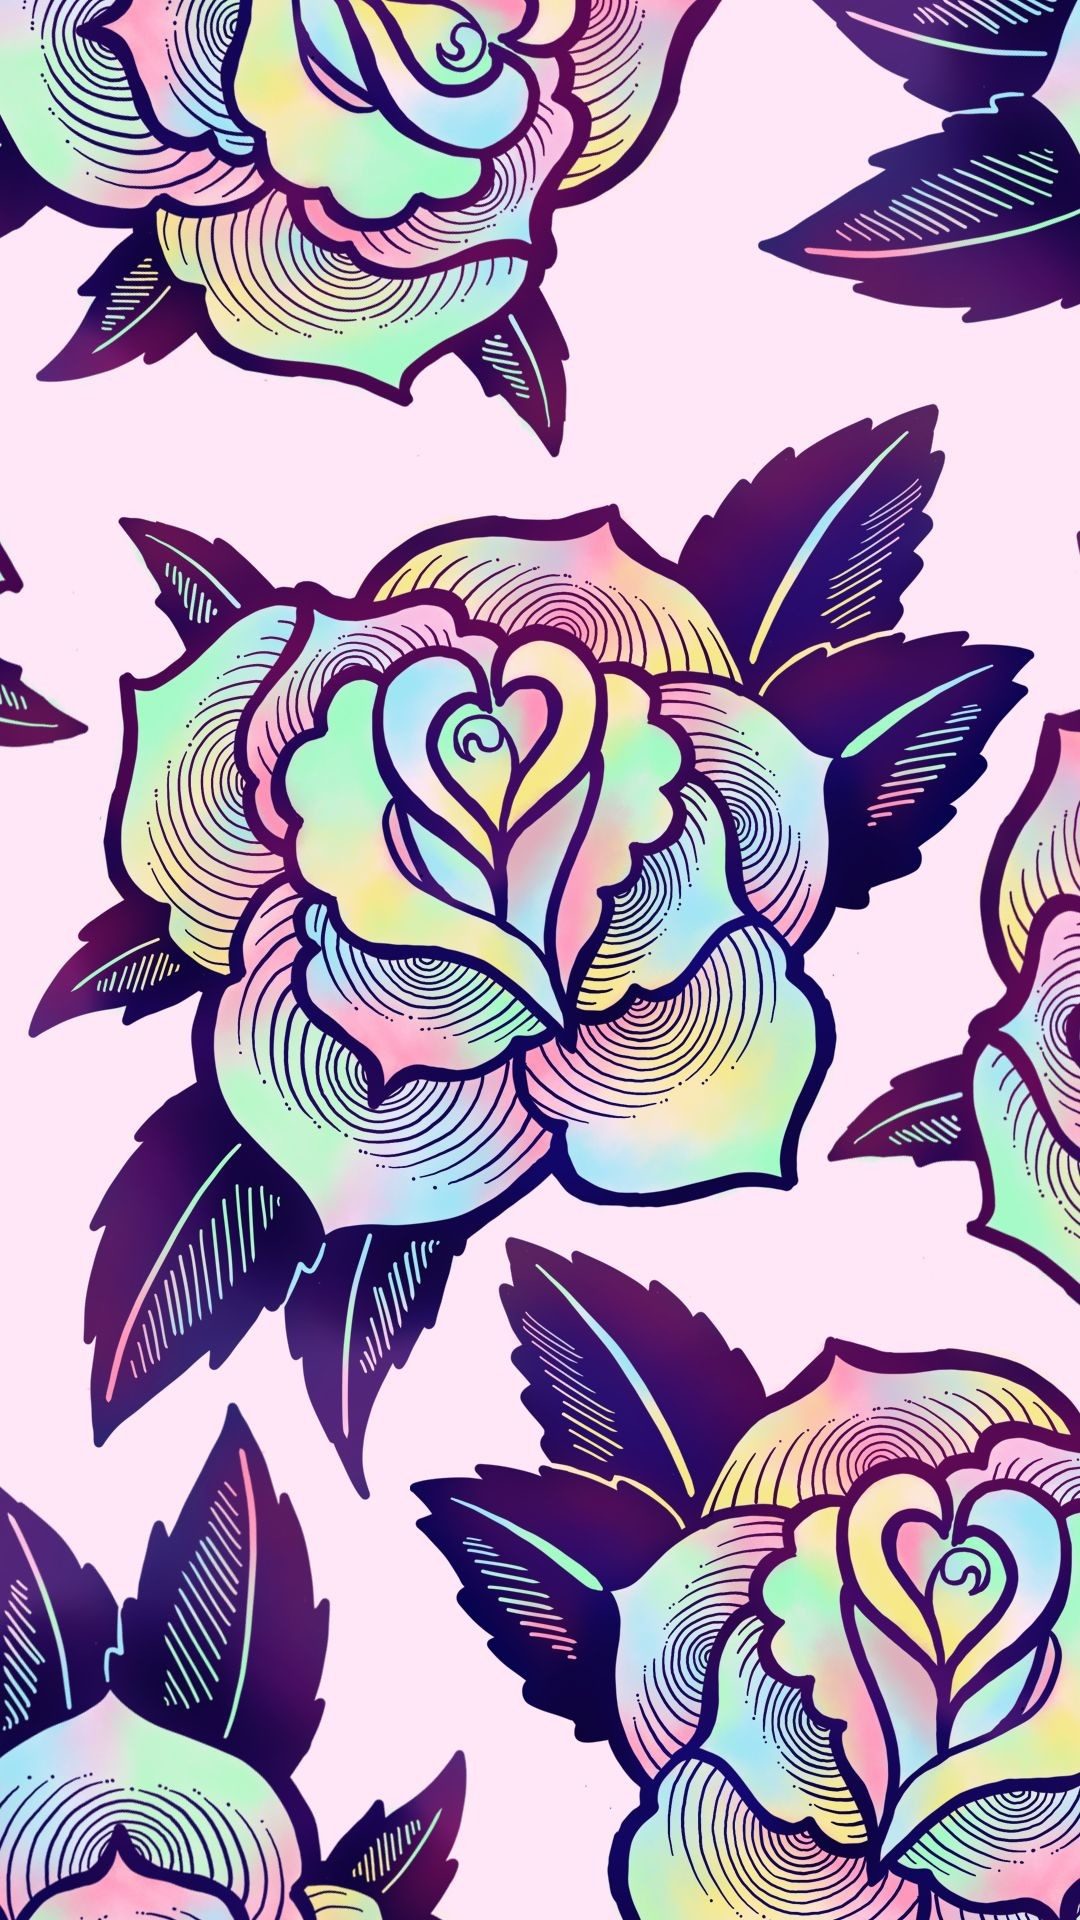 Res: 1080x1920, Cute, colorful psychedelic rose wallpaper for your phone or desktop computer. By Ectogasm